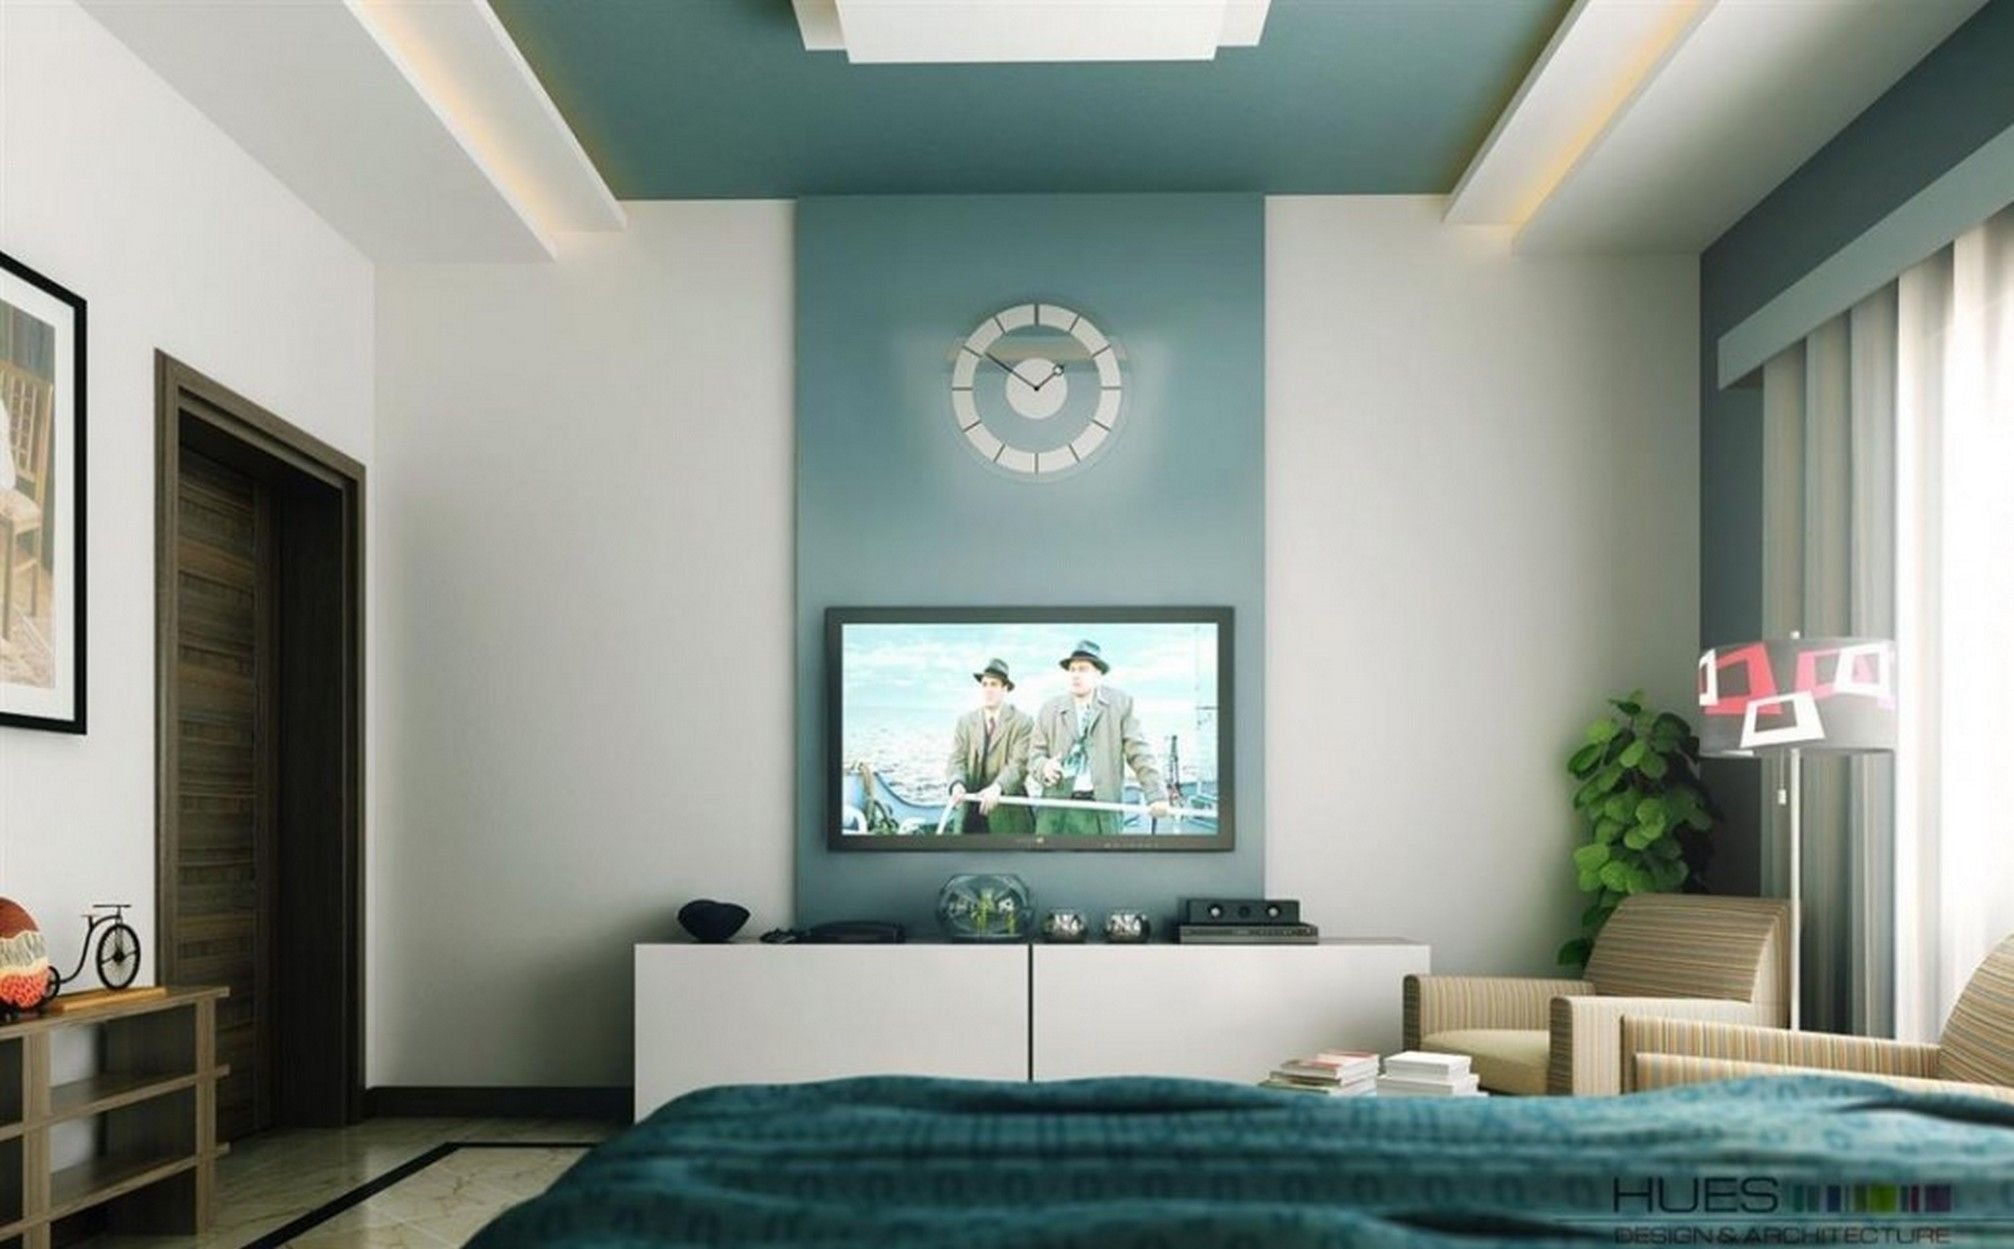 Image Result For Contrast Wall Painting Ideas Feature Wall Bedroom Accent Wall Bedroom Accent Walls In Living Room